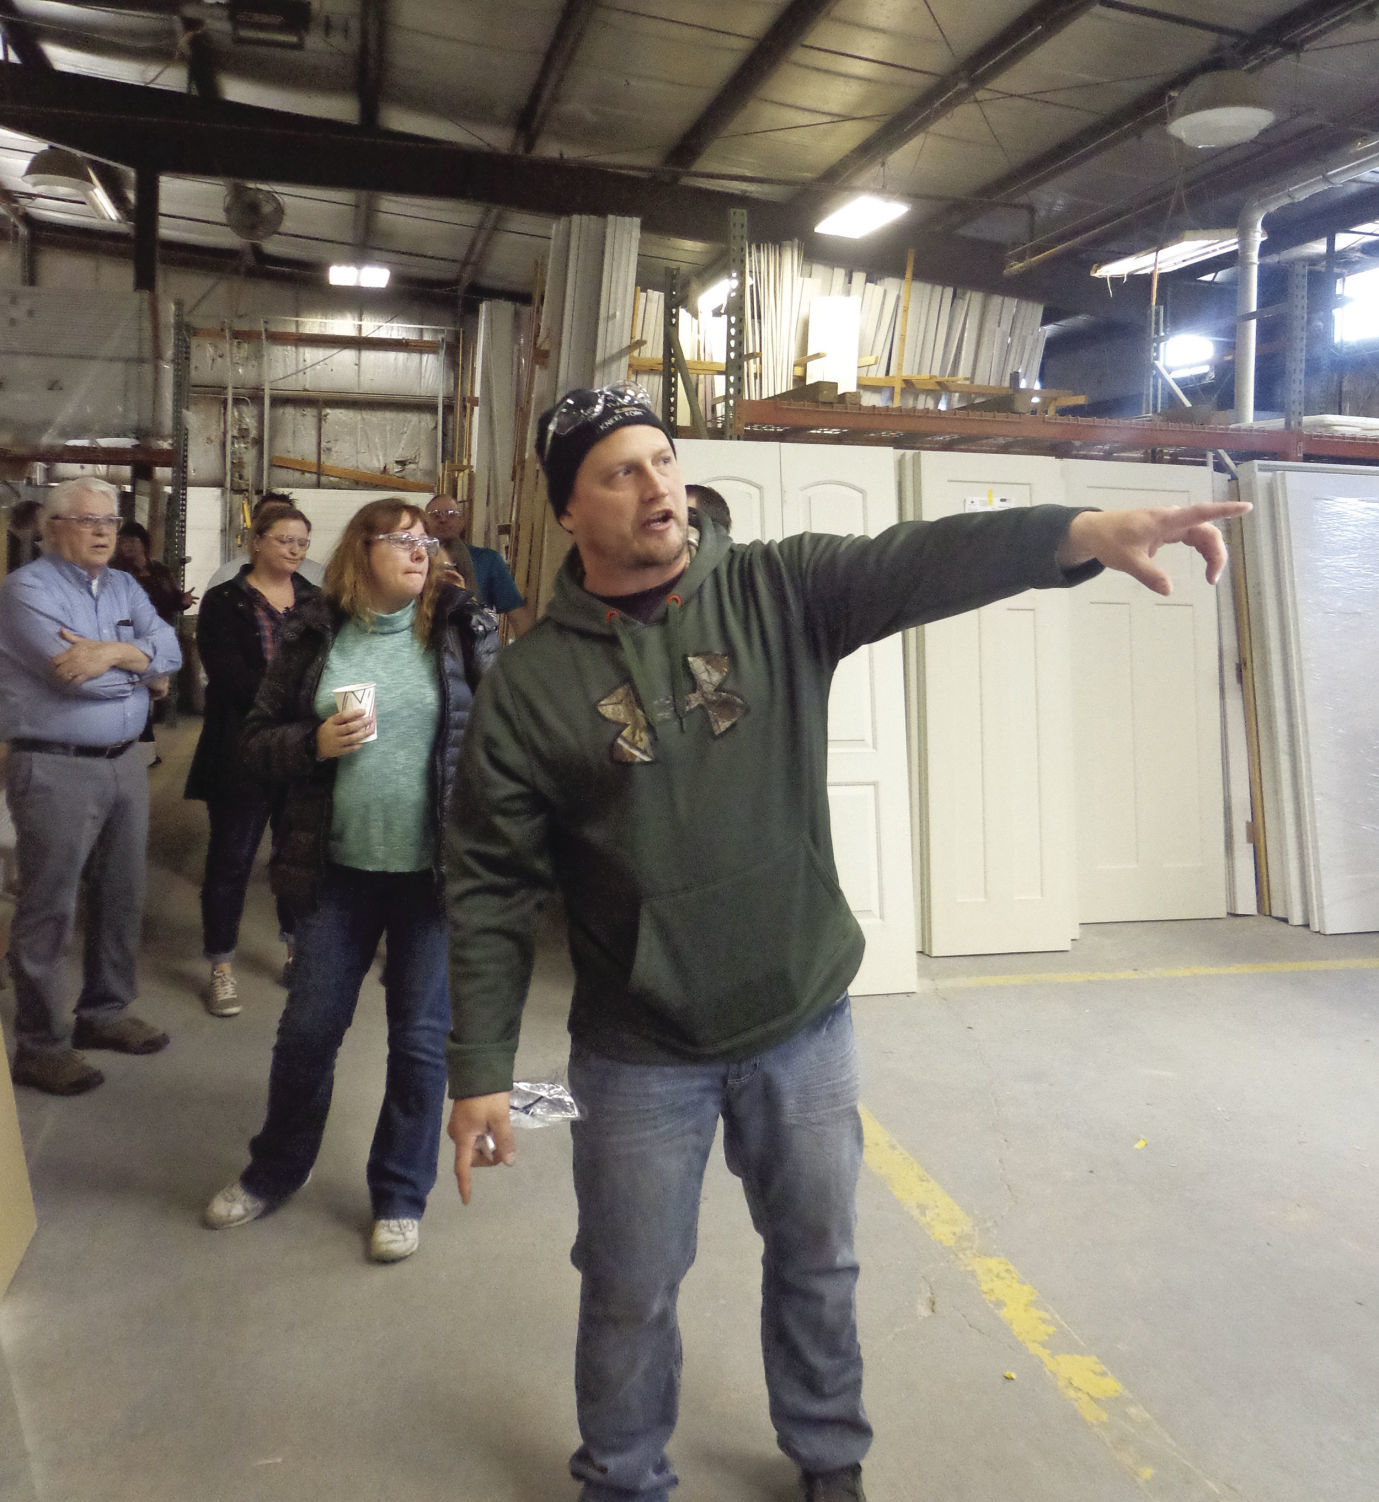 Members Of The Marshall Area Business Association (MABA) Took A Tour Of Auburn  Ridge During Their Monthly Meeting April 12. The Marshall Business That  Makes ...